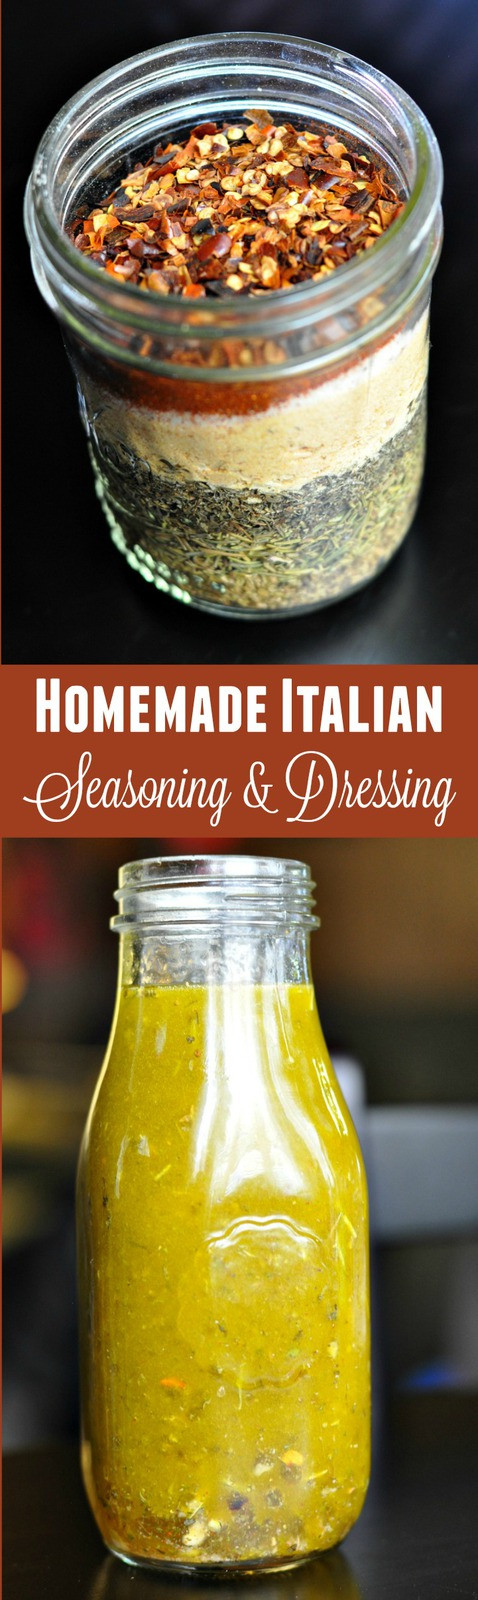 Best ideas about DIY Italian Dressing . Save or Pin Homemade Italian Seasoning & Italian Dressing Happy Now.